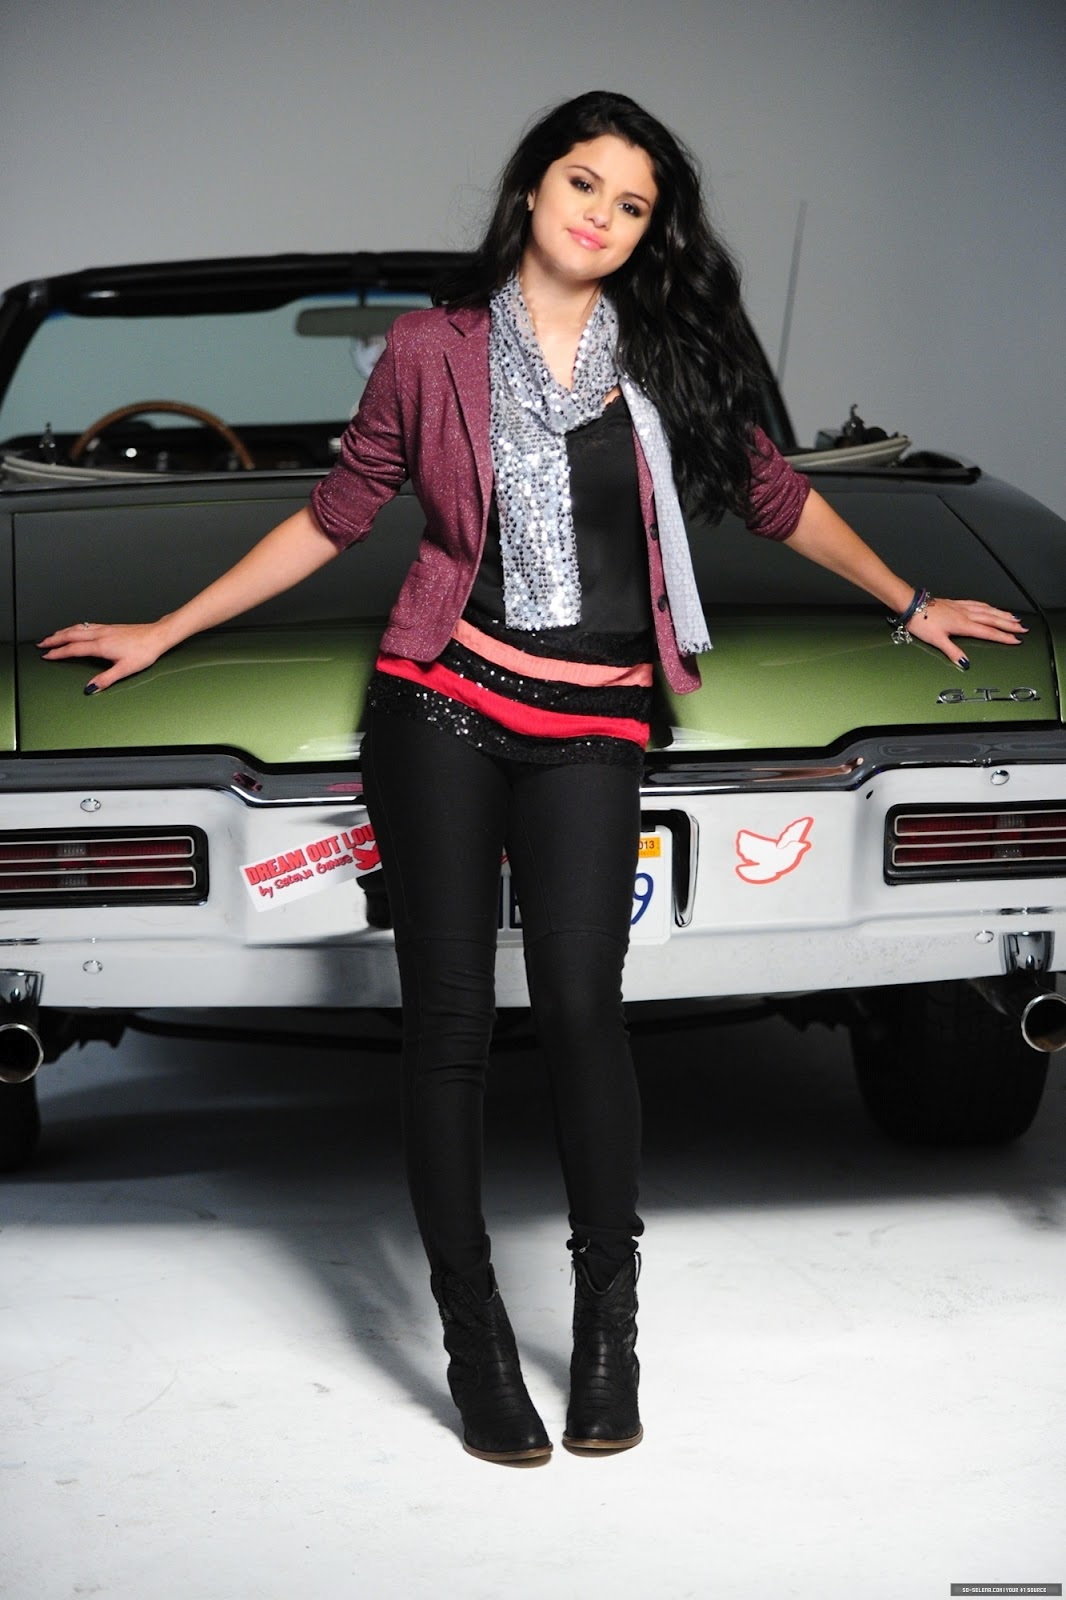 Selena Gomez Dream Out Loud FallWinter 2012-2013 Lookbook